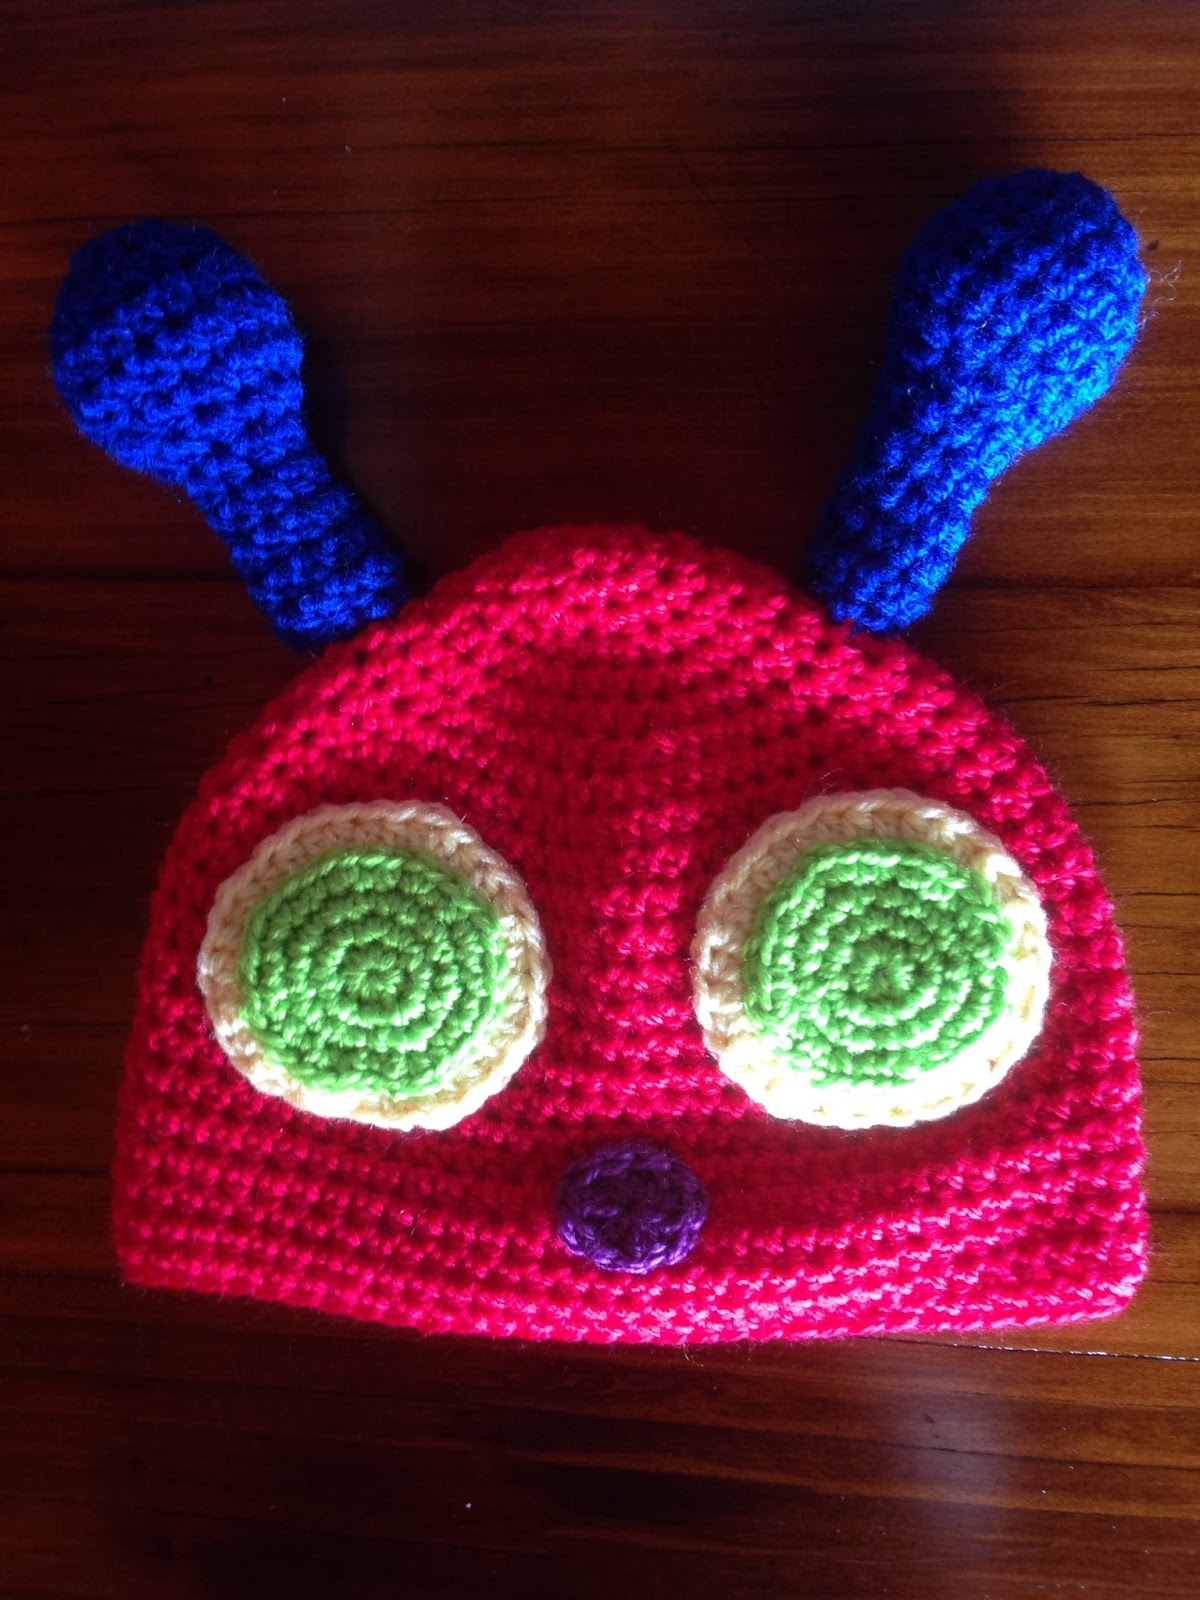 Crochet Obsession: Hungry Caterpillar Baby Cocoon and Hat crochet ...